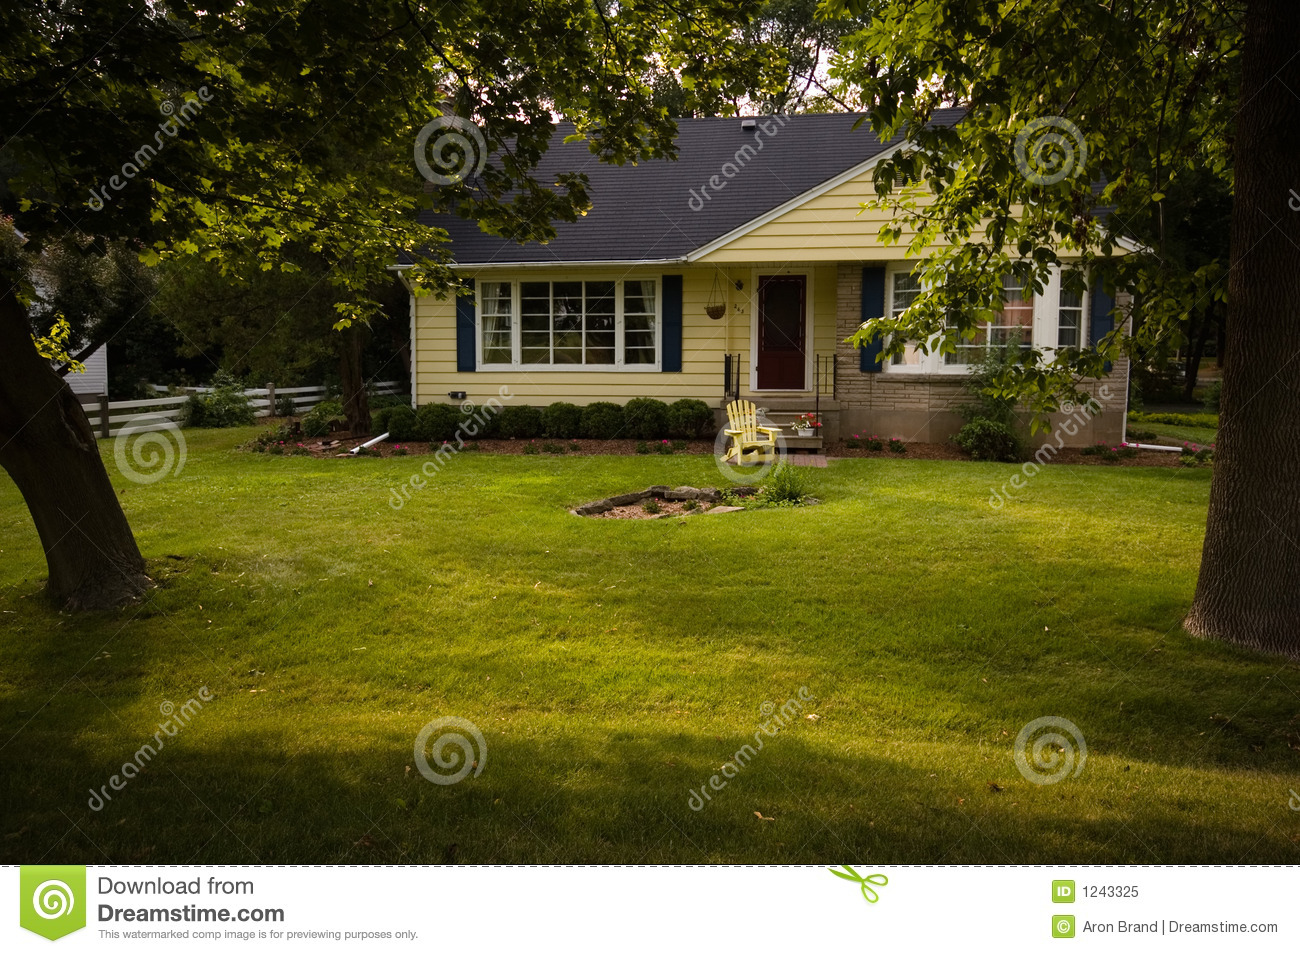 Country house royalty free stock photo image 1243325 for Country house online